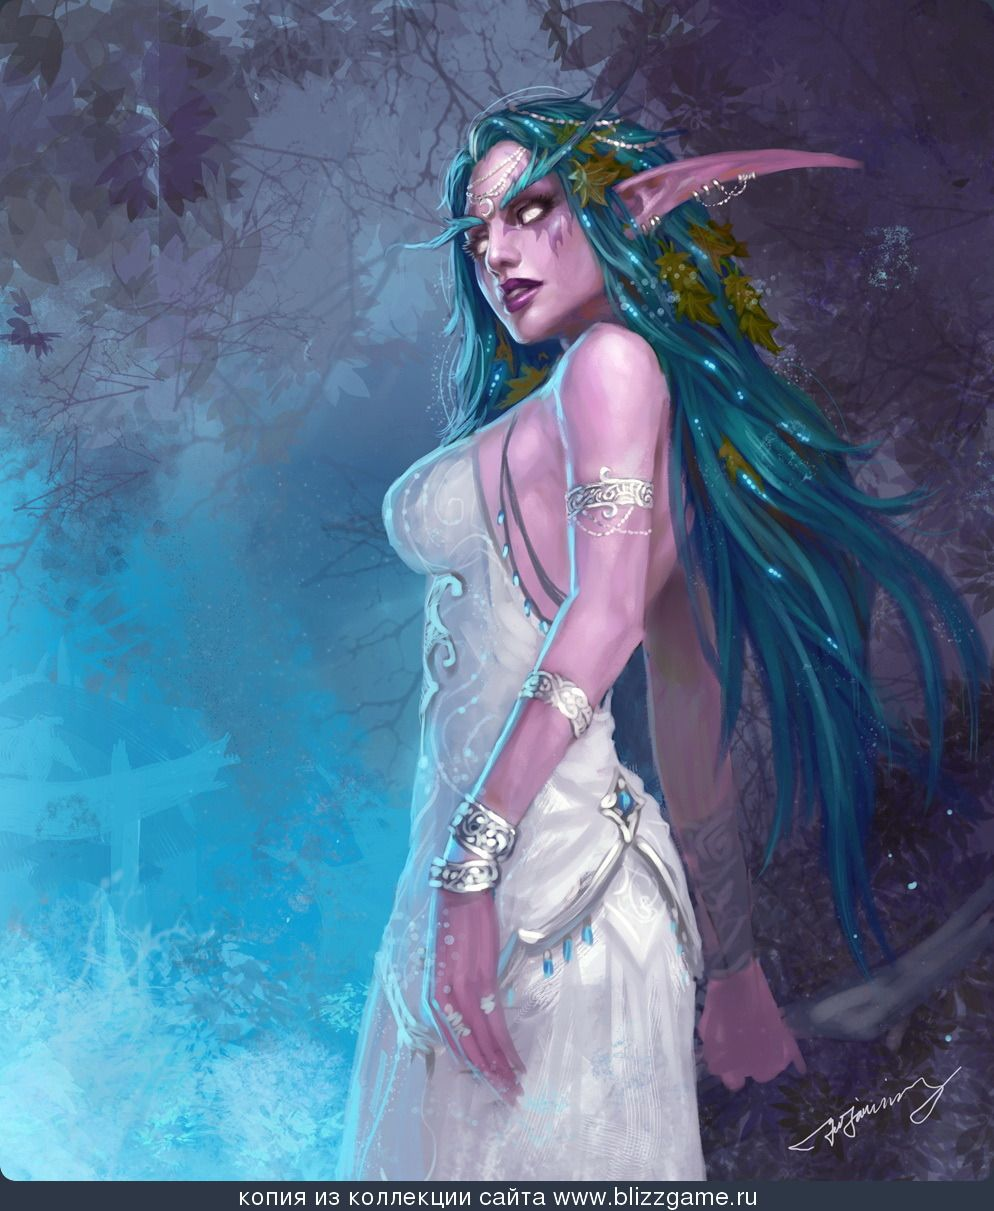 Tyrande Whisperwind | Click here to learn the secret to increasing your gold-per-hour by 350% - http://bit.ly/1i2HCO0